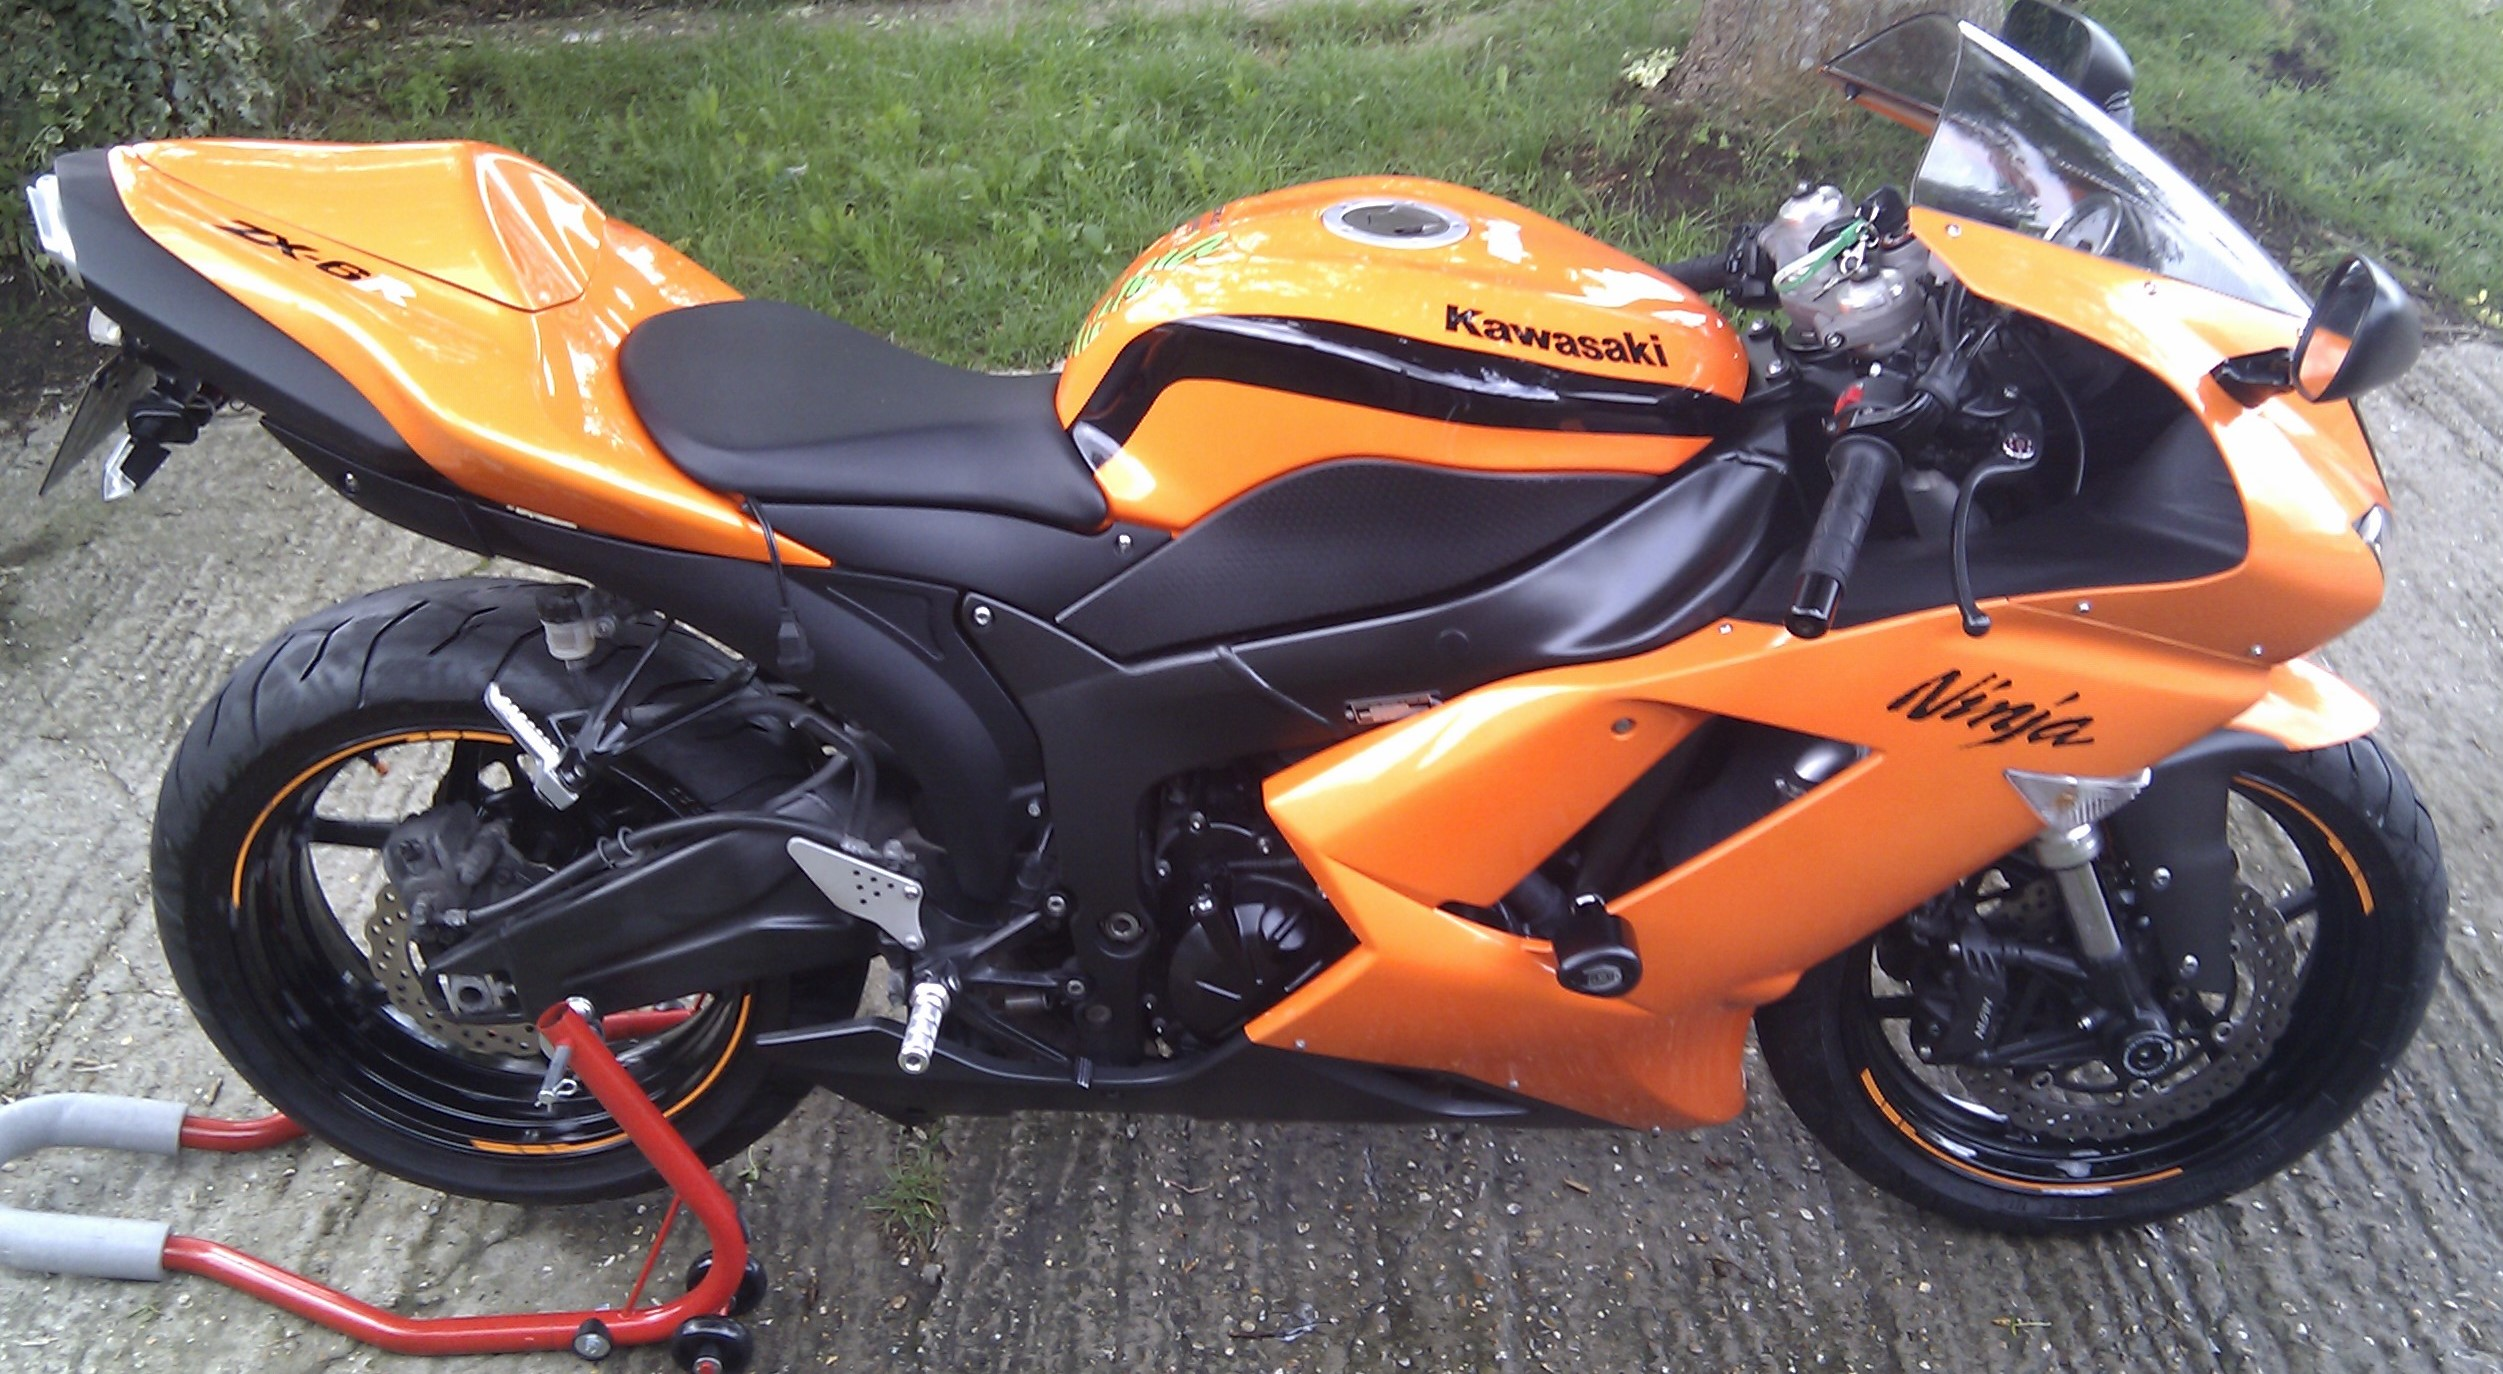 Kawasaki Ninja ZX6R Wildfire Orange